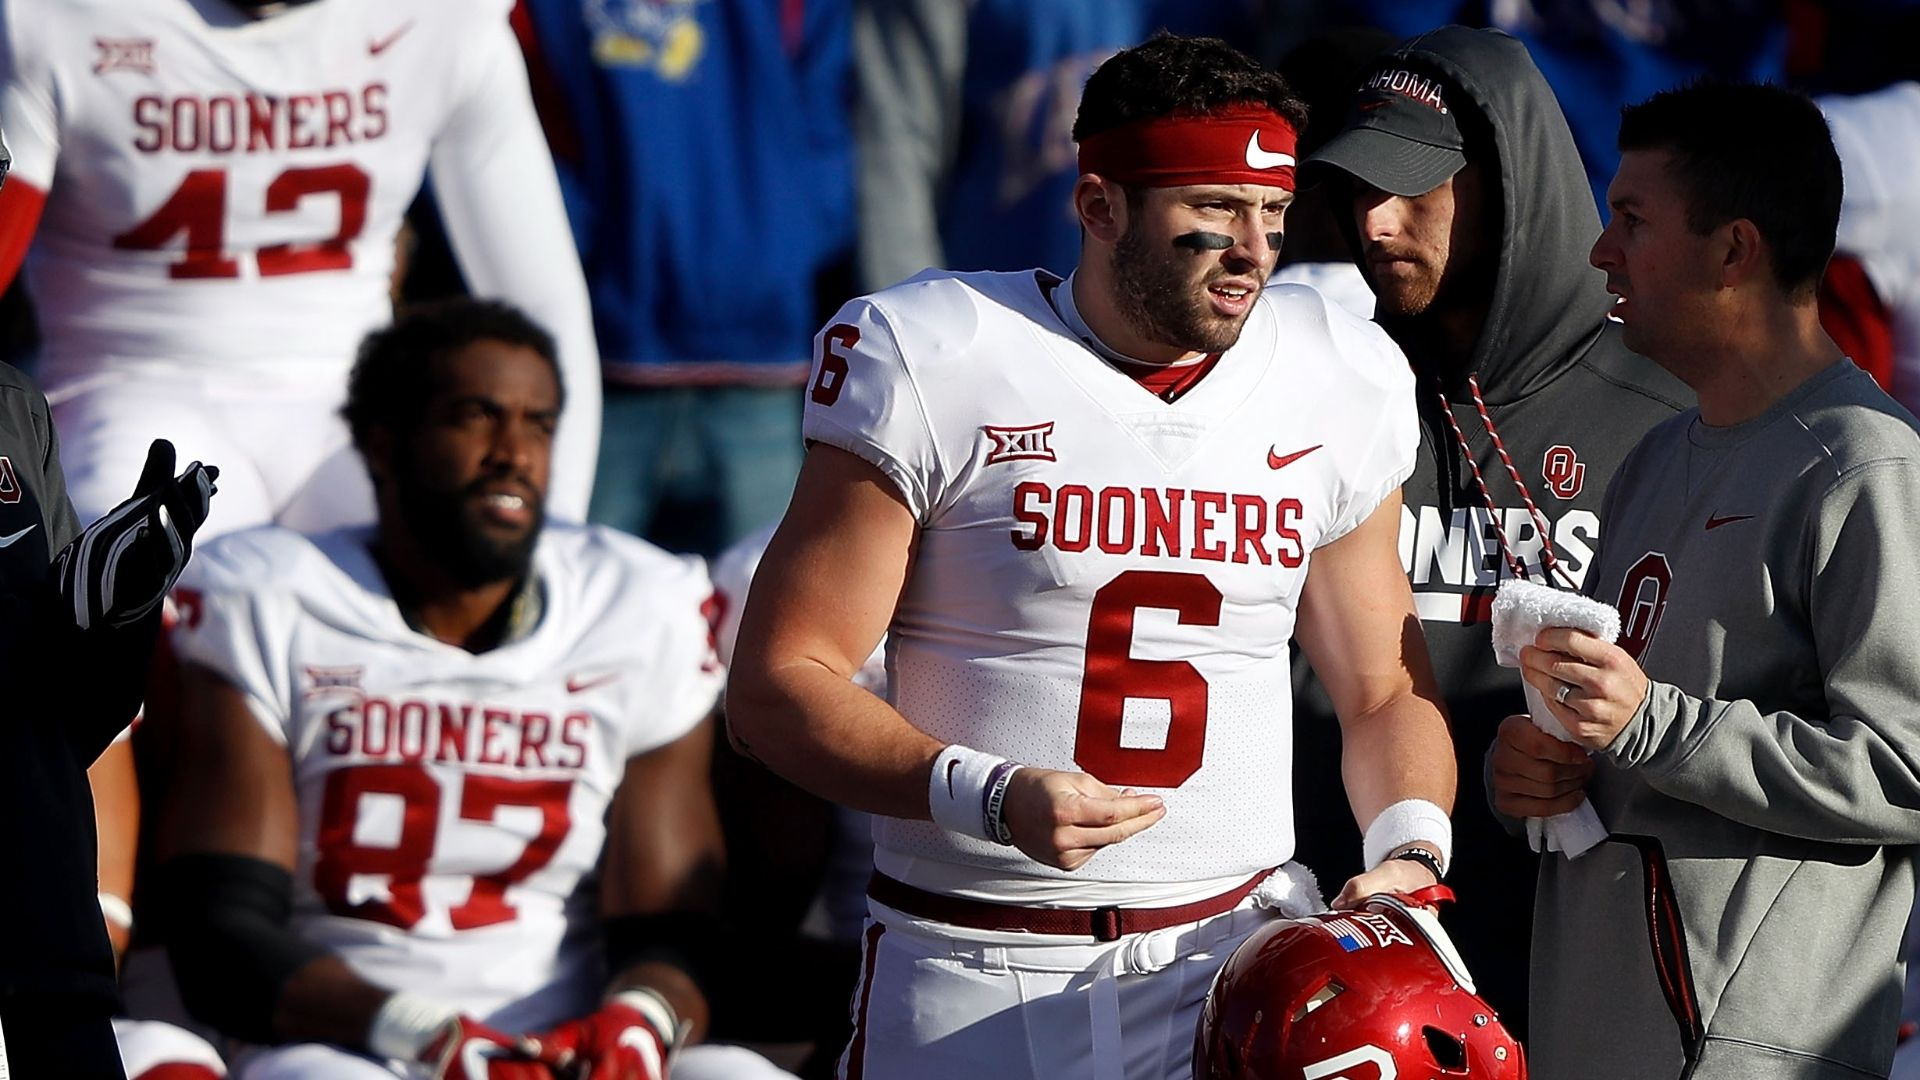 Mayfield goes off after handshake snub